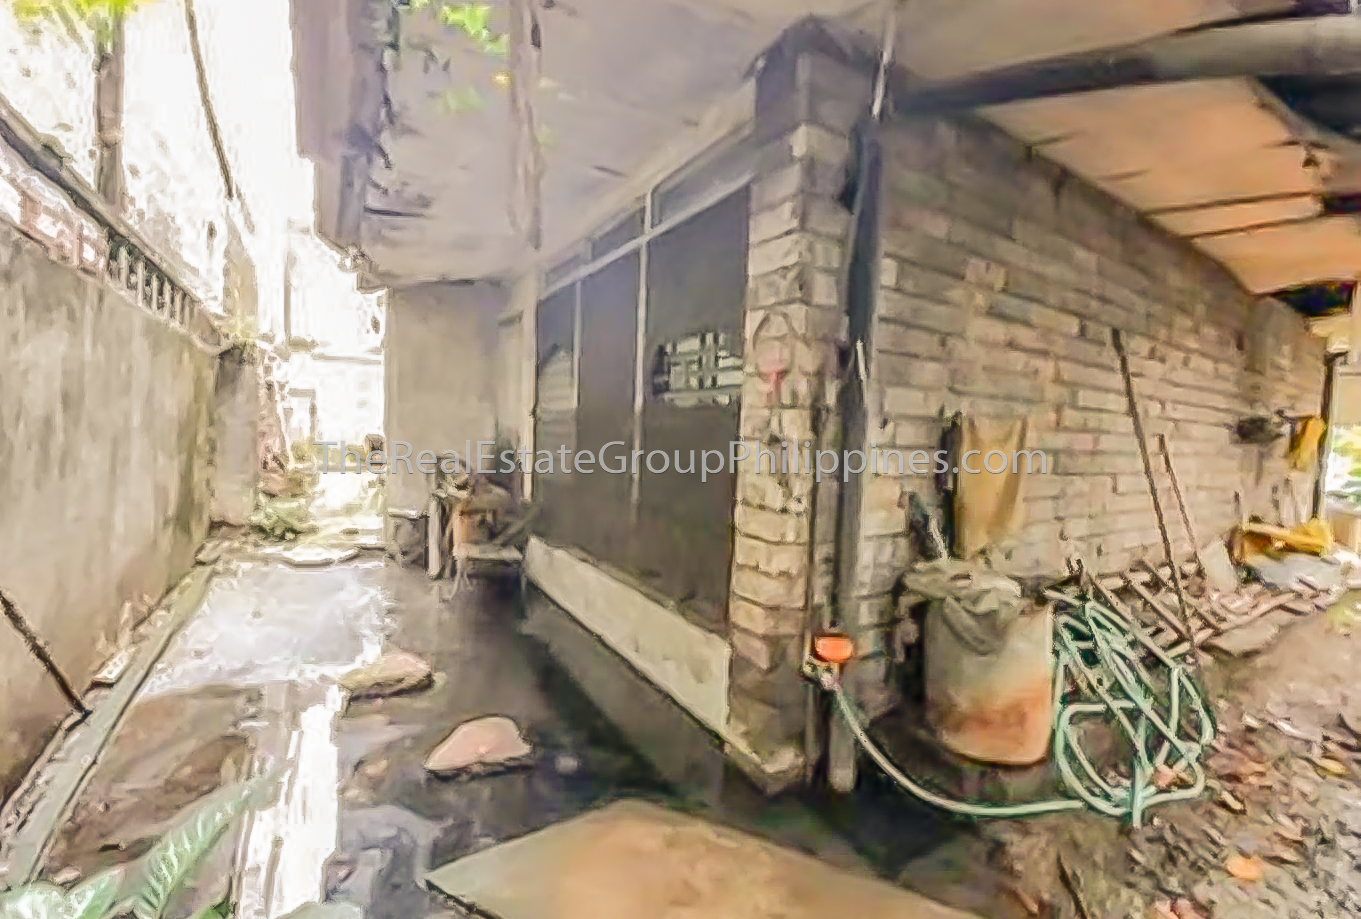 329 Sqm House For Sale, Brgy Olympia Makati-7